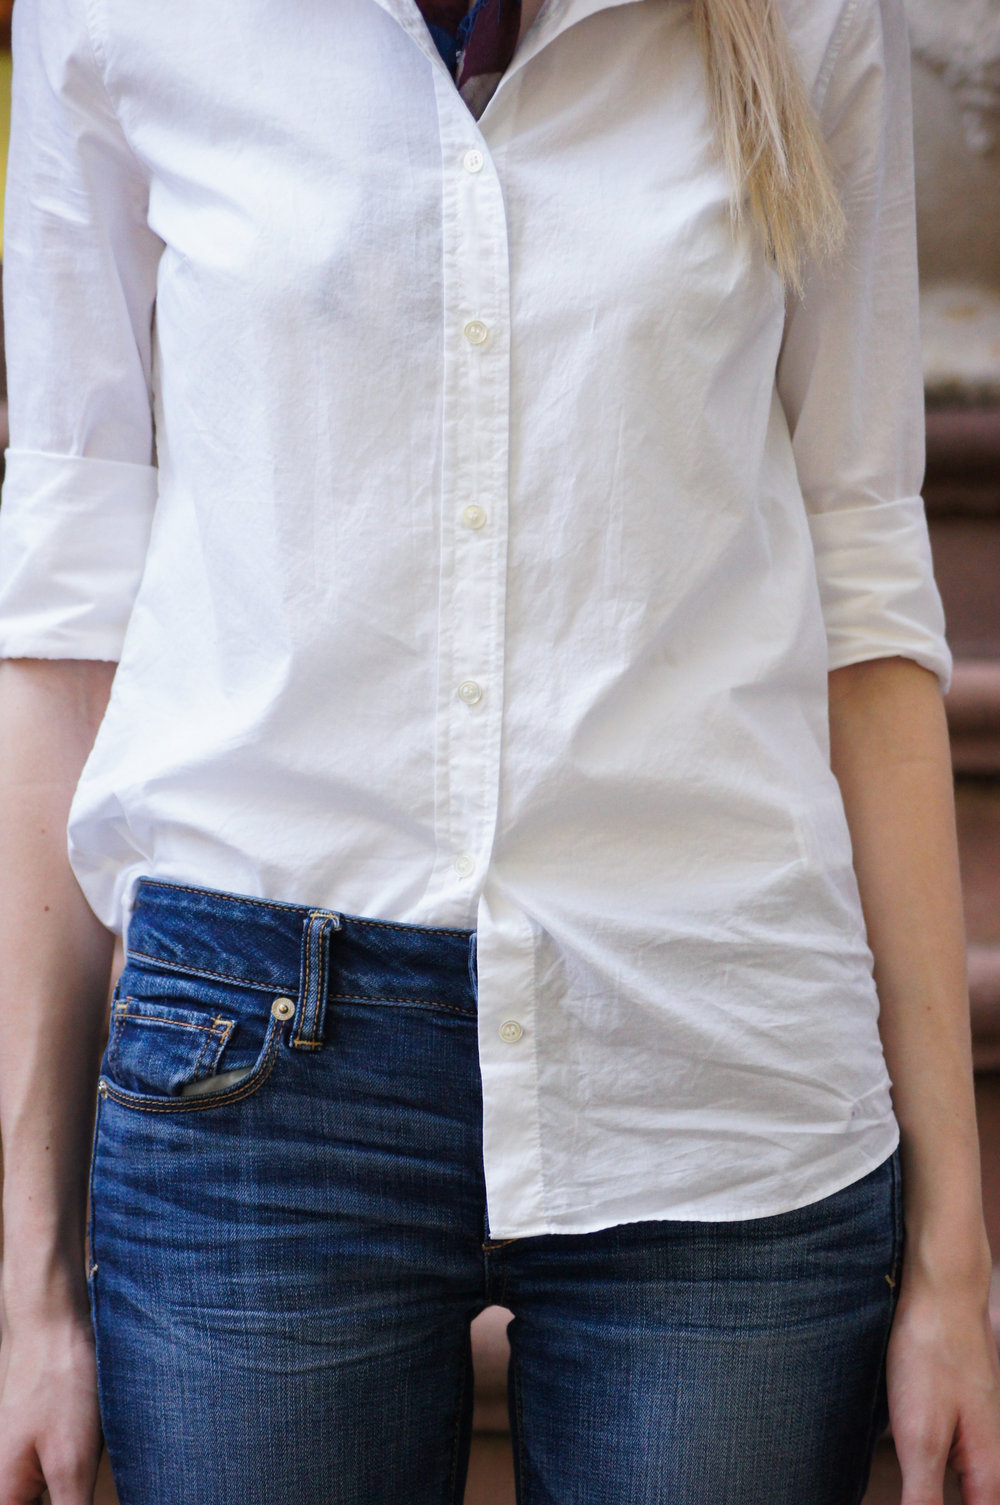 J.Crew white perfect shirt, half tucked